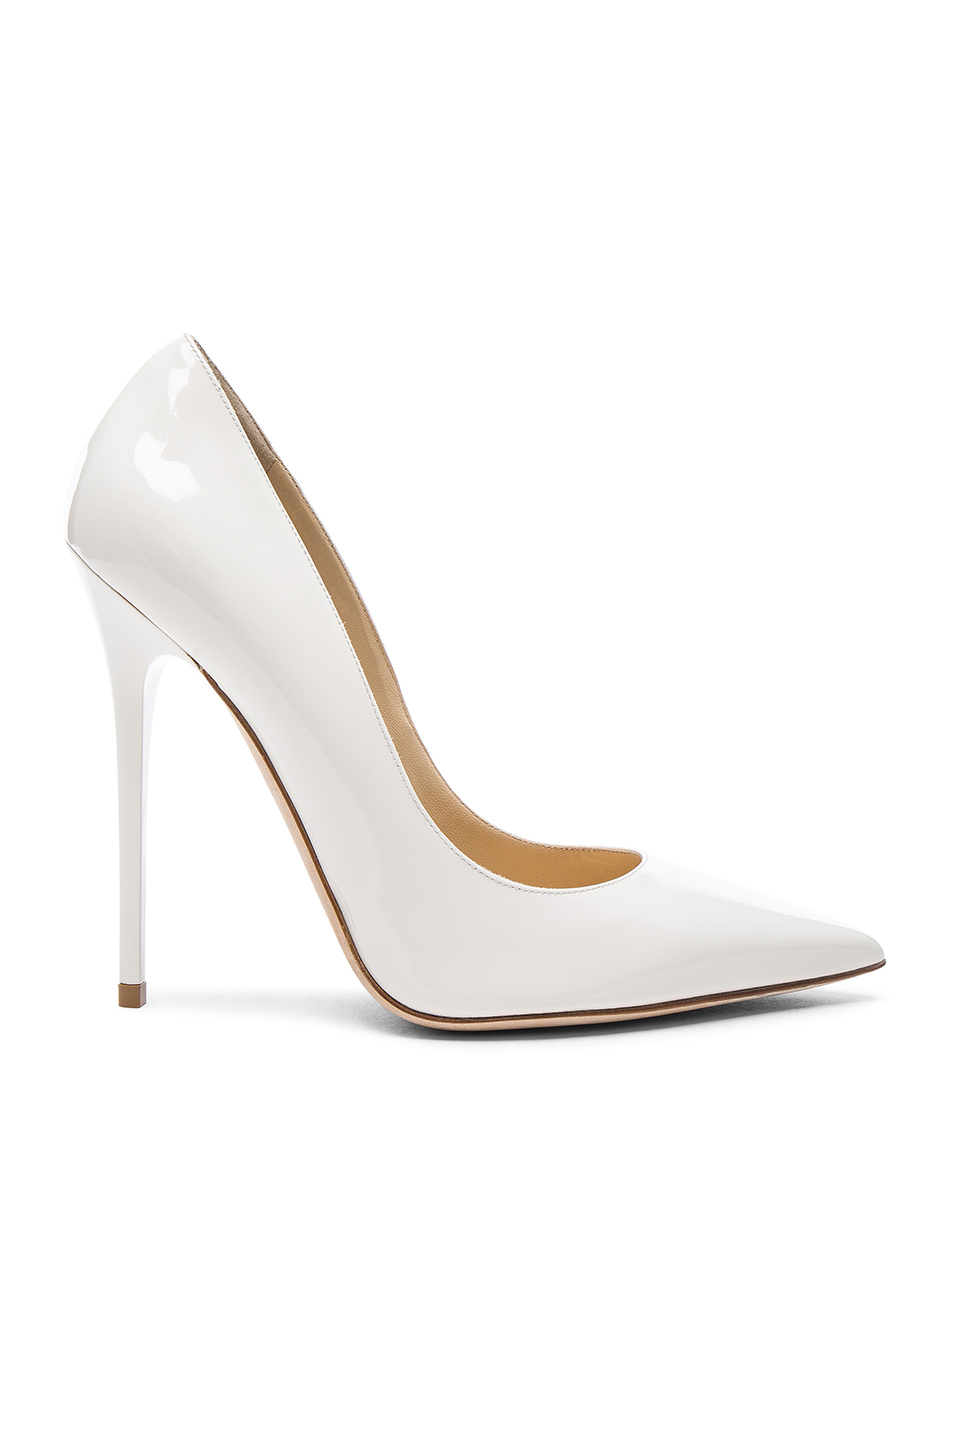 Jimmy Choo Patent Leather Anouk Pumps in White